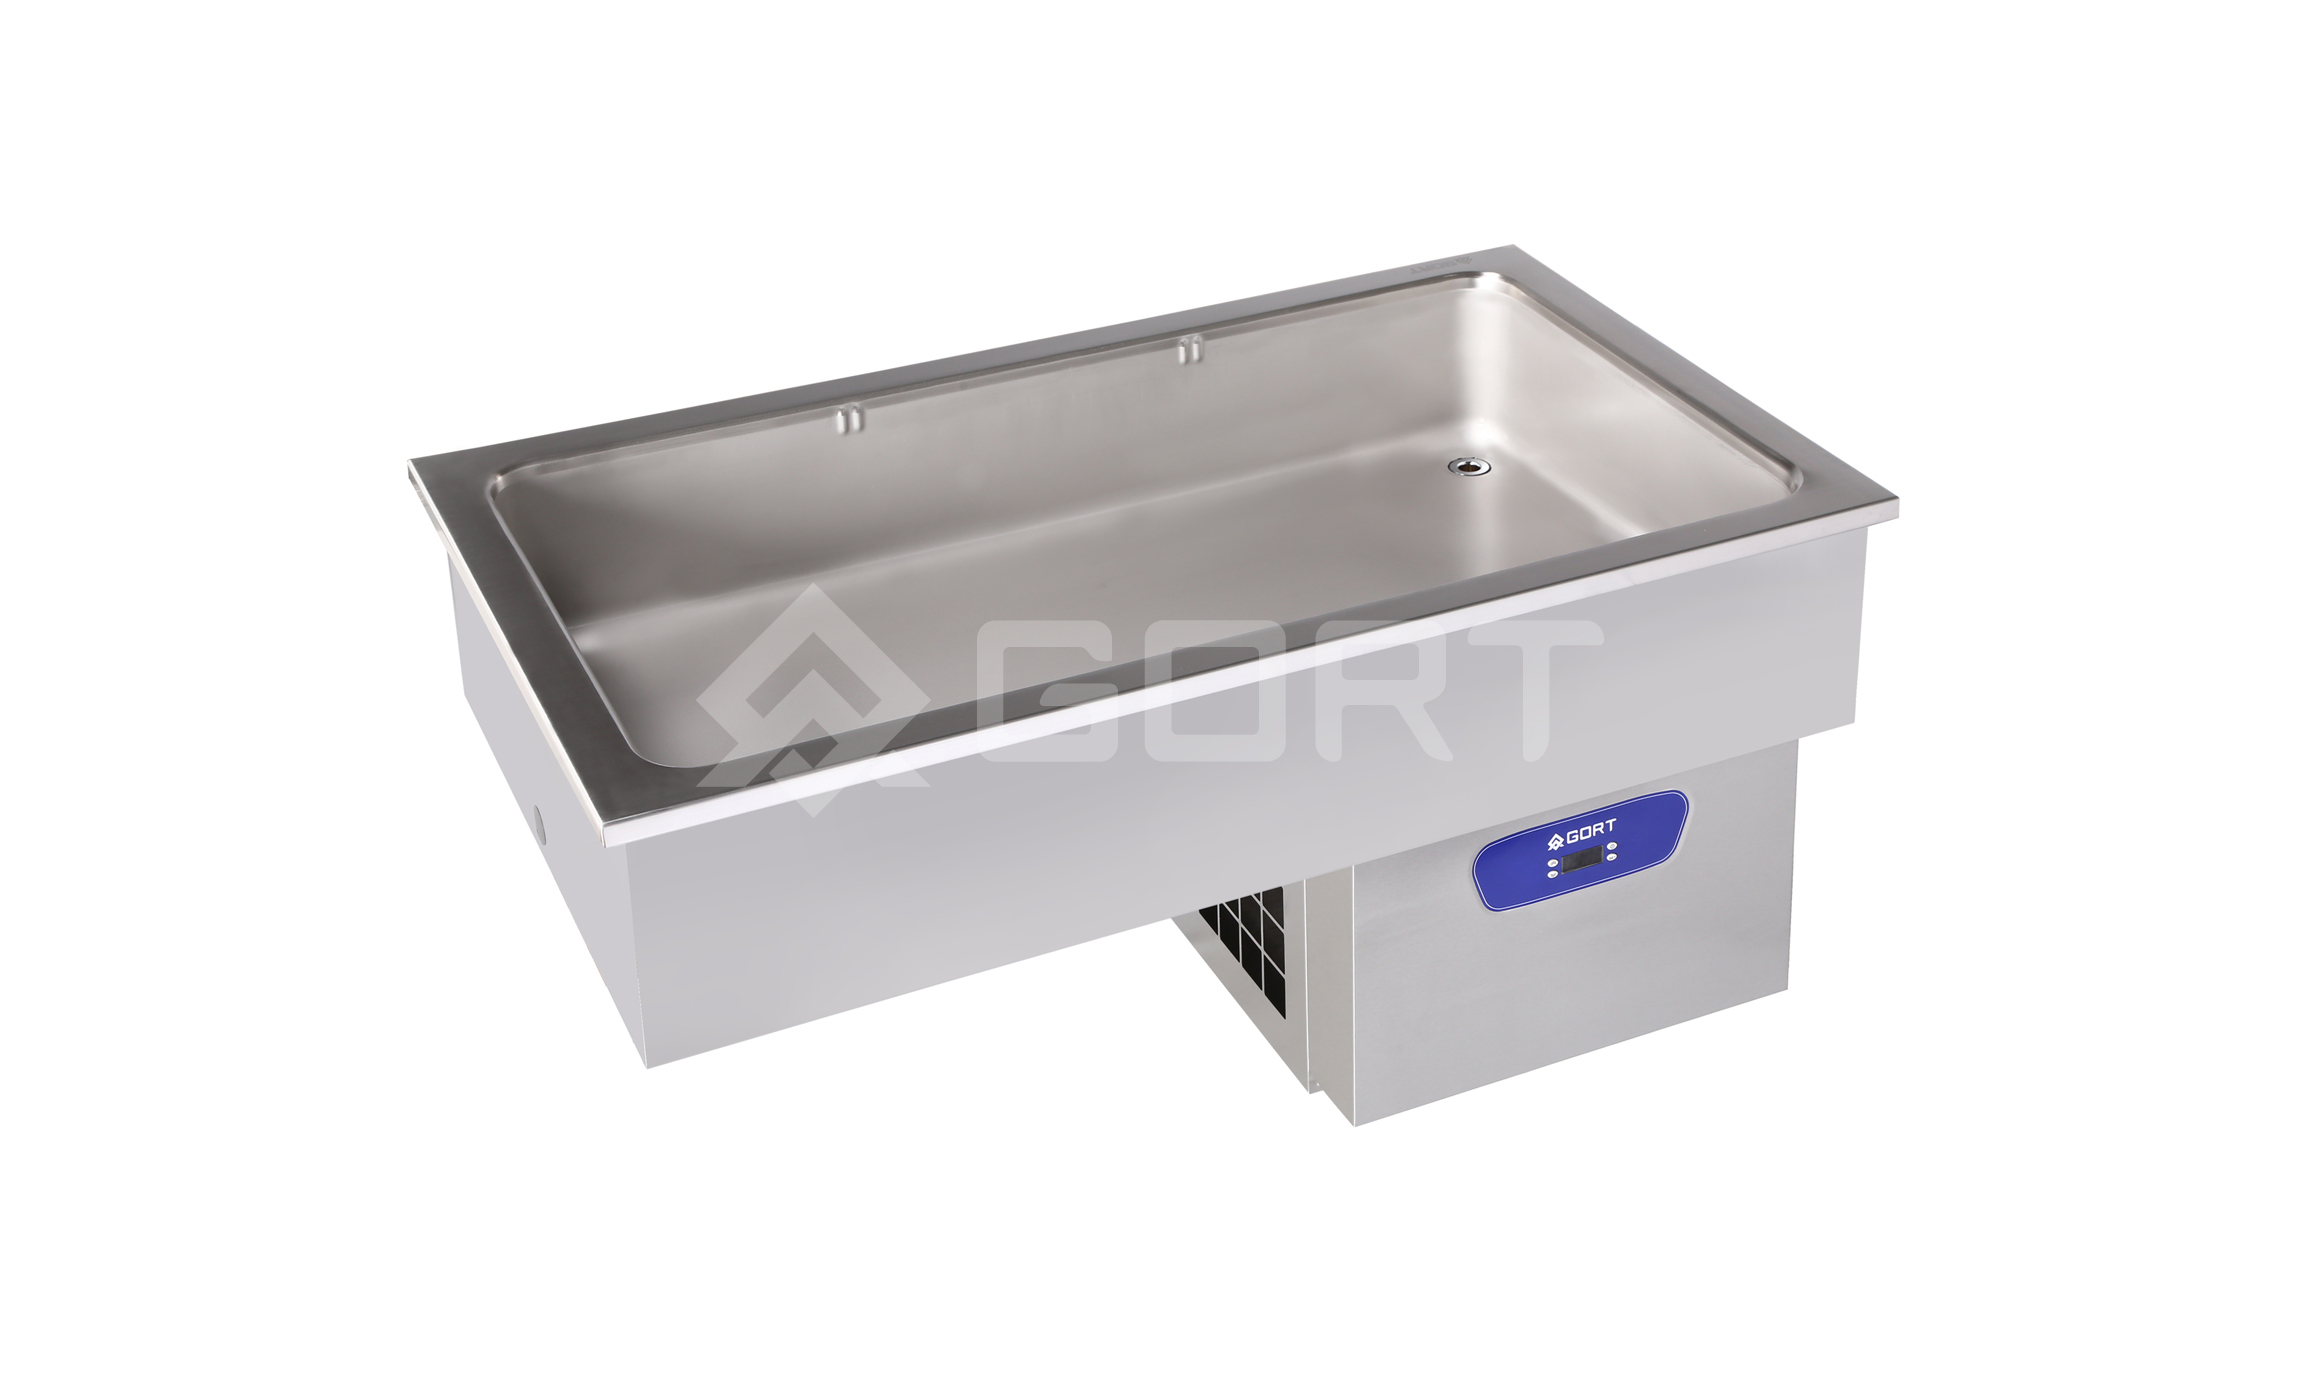 Refrigerated static well DROP-IN, 3 x GN1/1